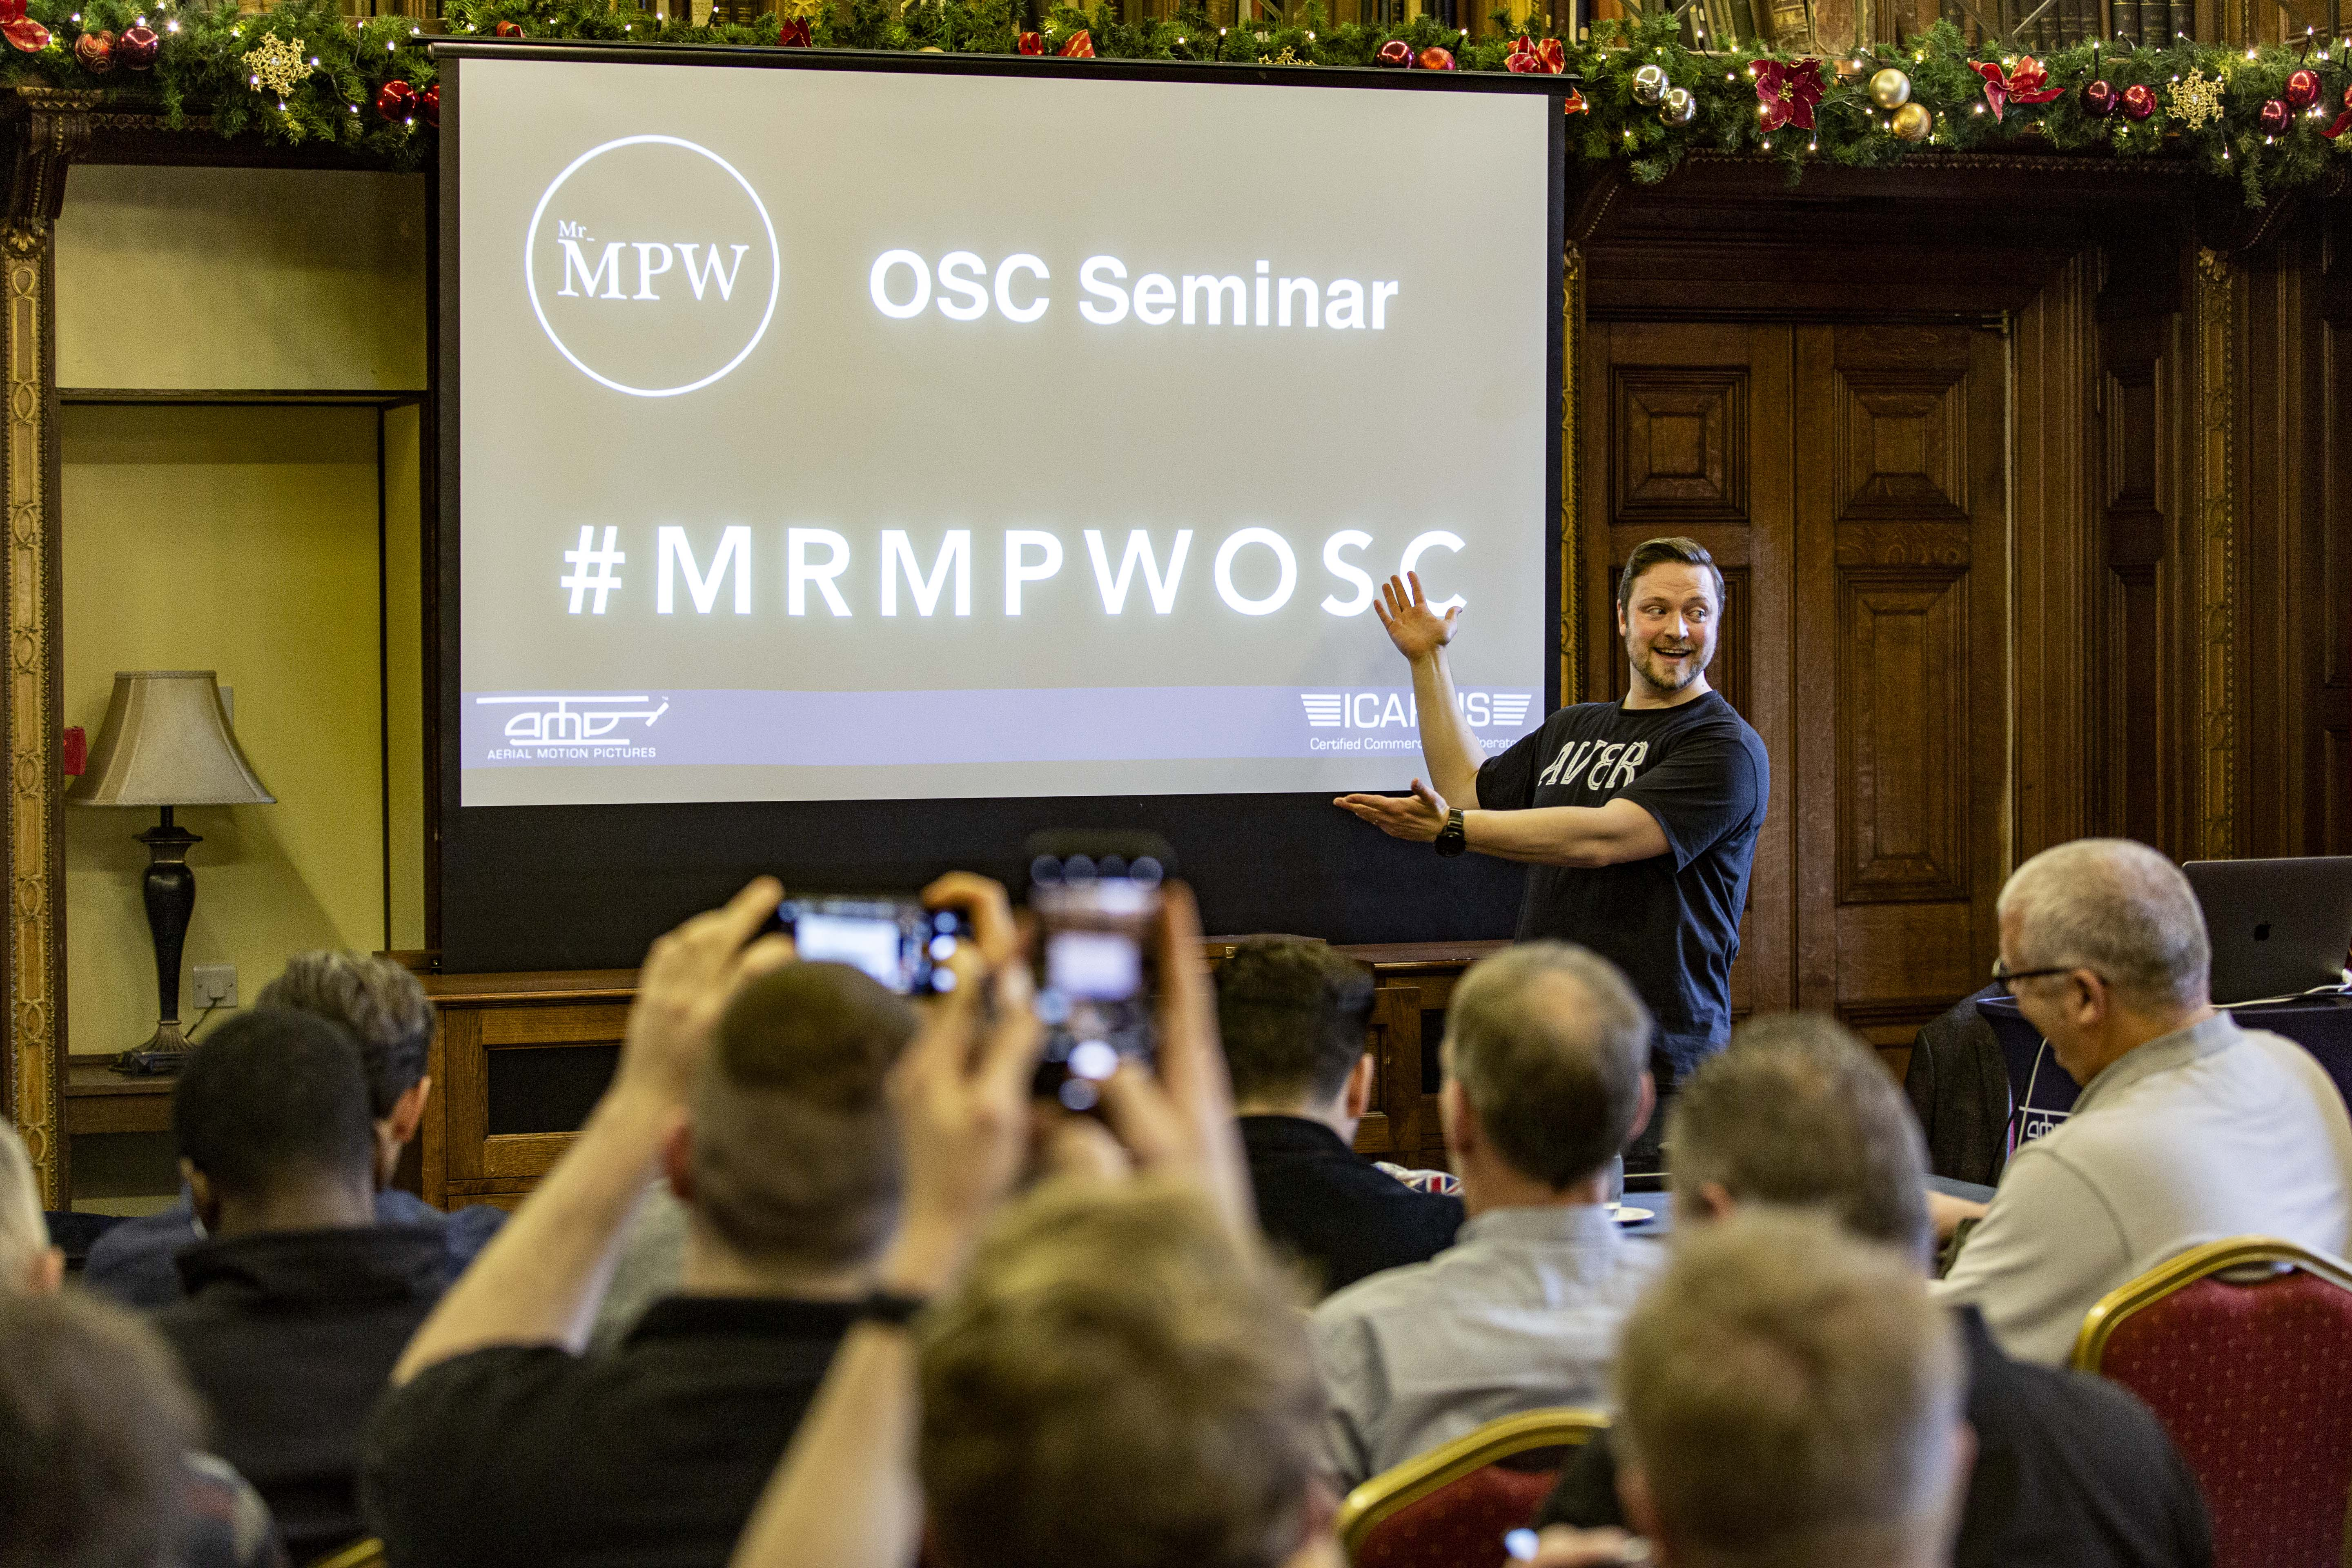 matt williams mr mpw osc seminar